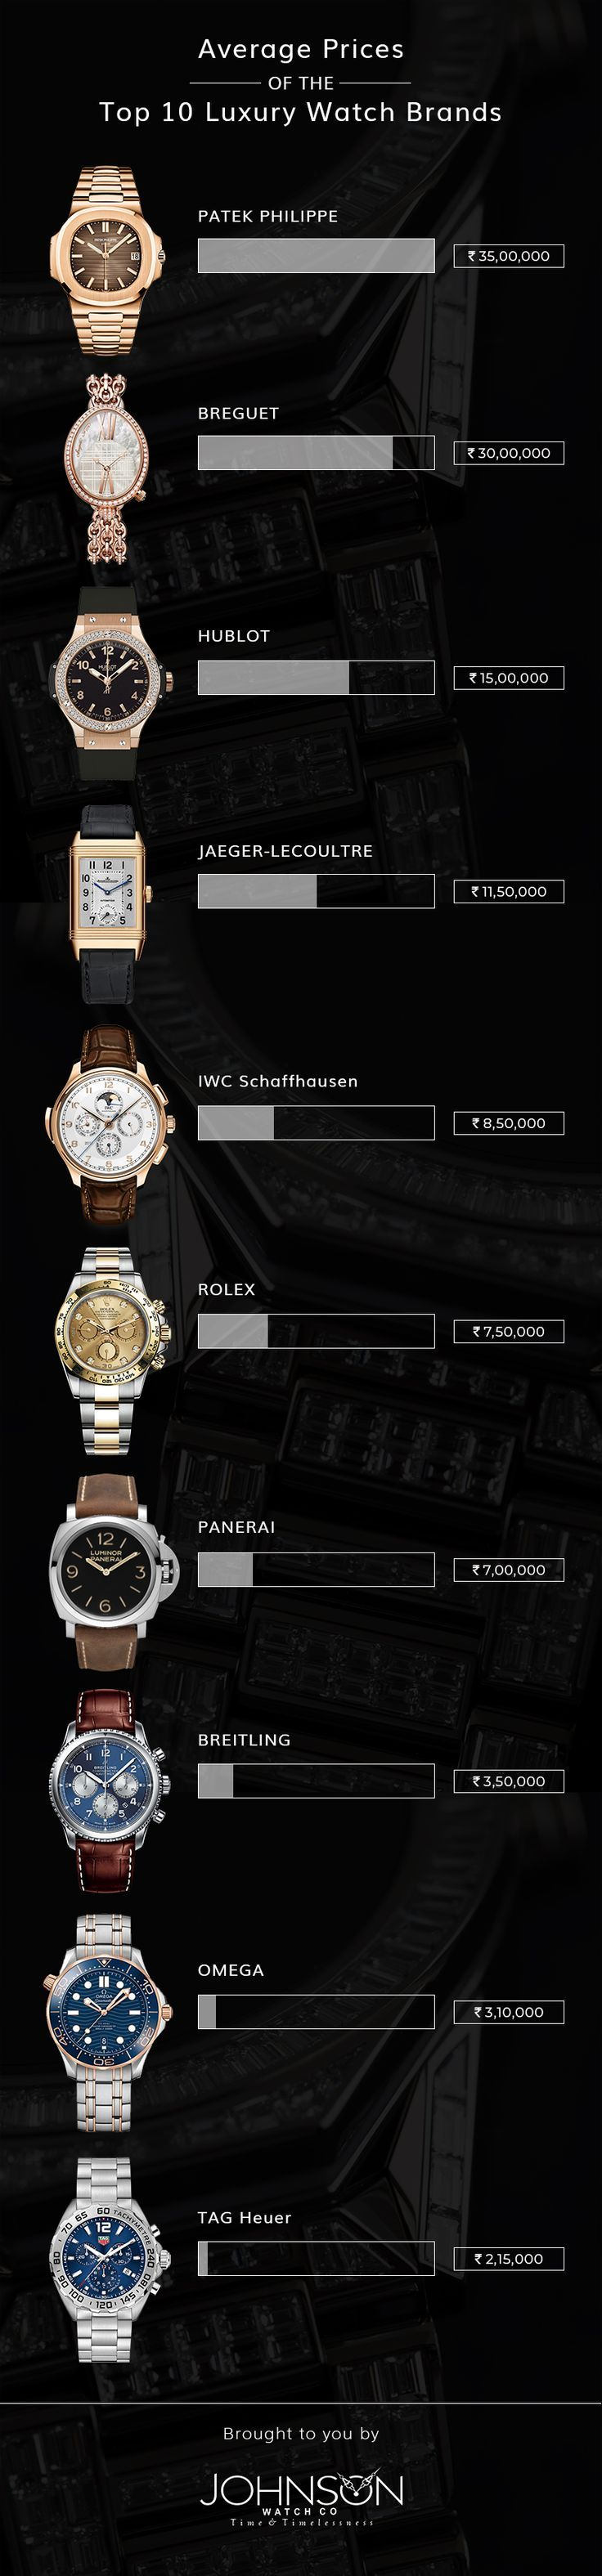 Top 10 Luxury Watch Brand Price Luxury Watch Brands Watch Brands Luxury Watch